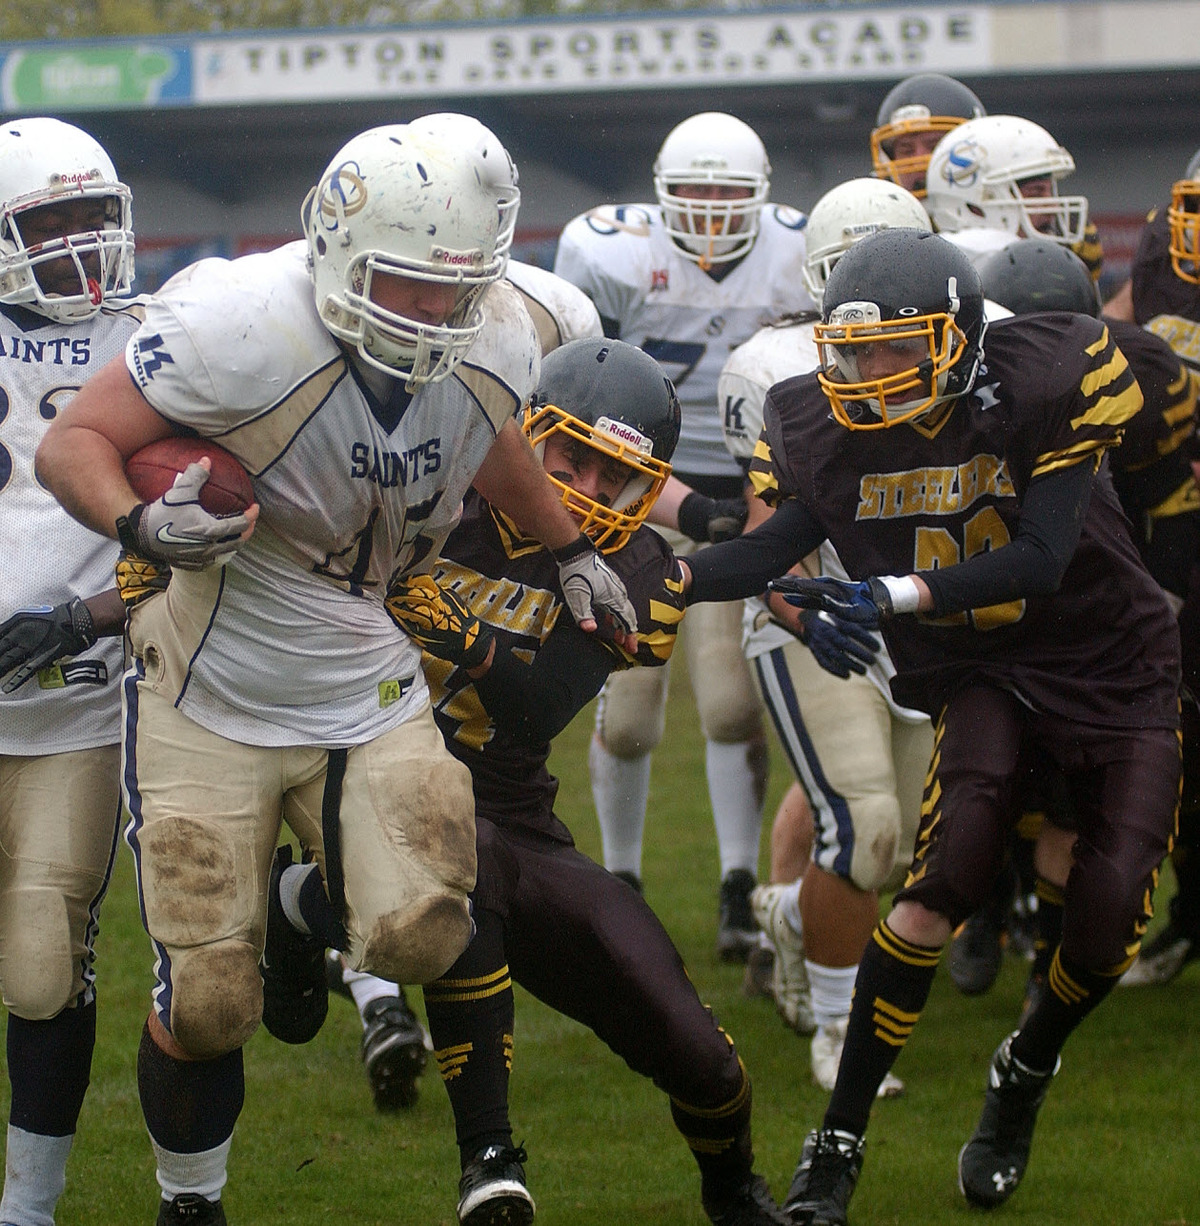 Oxford Saints' Stephen Bentley is set to crash over for one of his two touchdowns